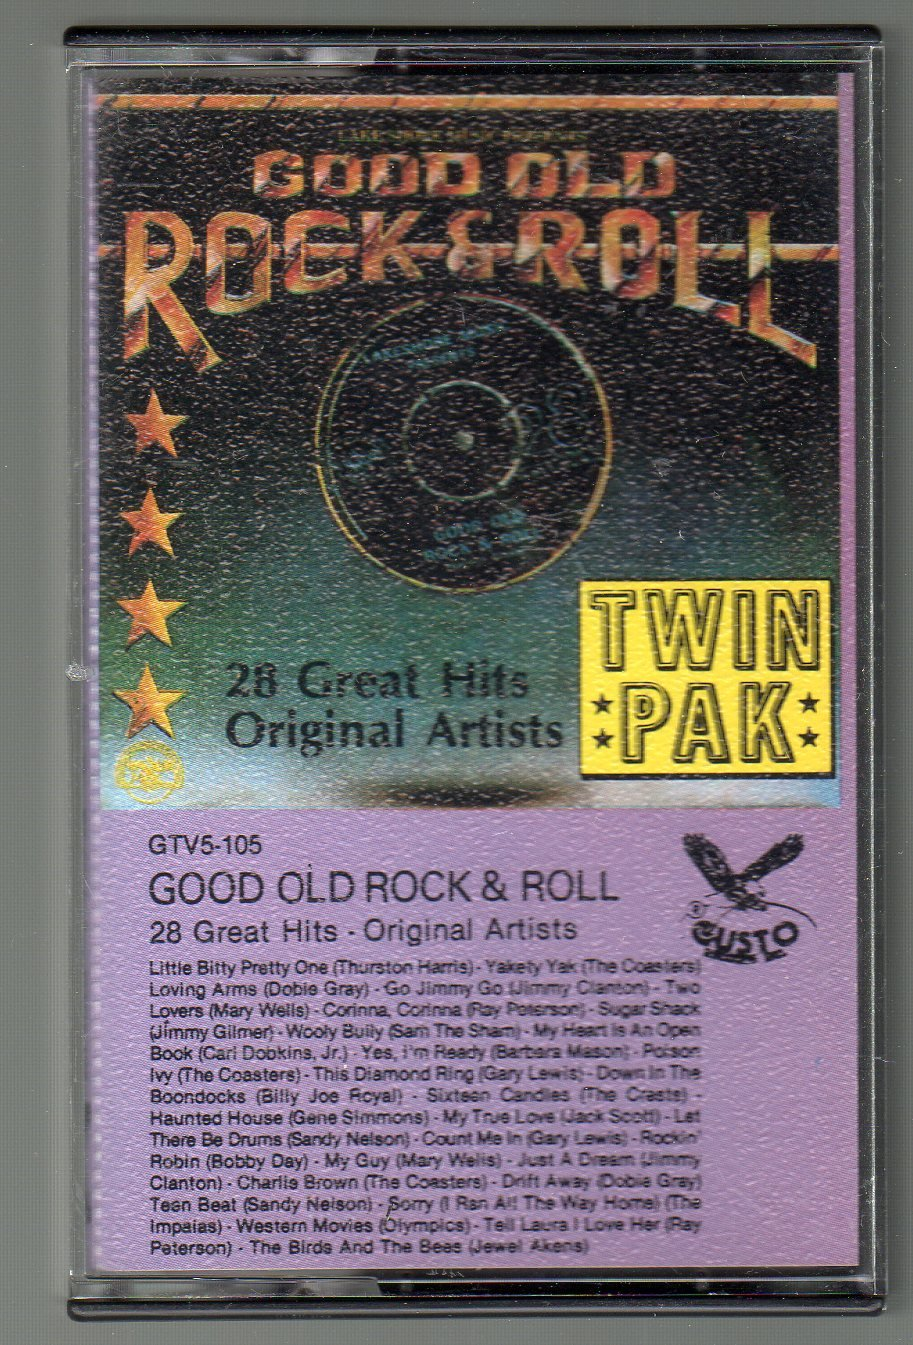 Good Old Rock N' Roll - 28 Great Hits Original Artists 1975 GUSTO Cassette Tape